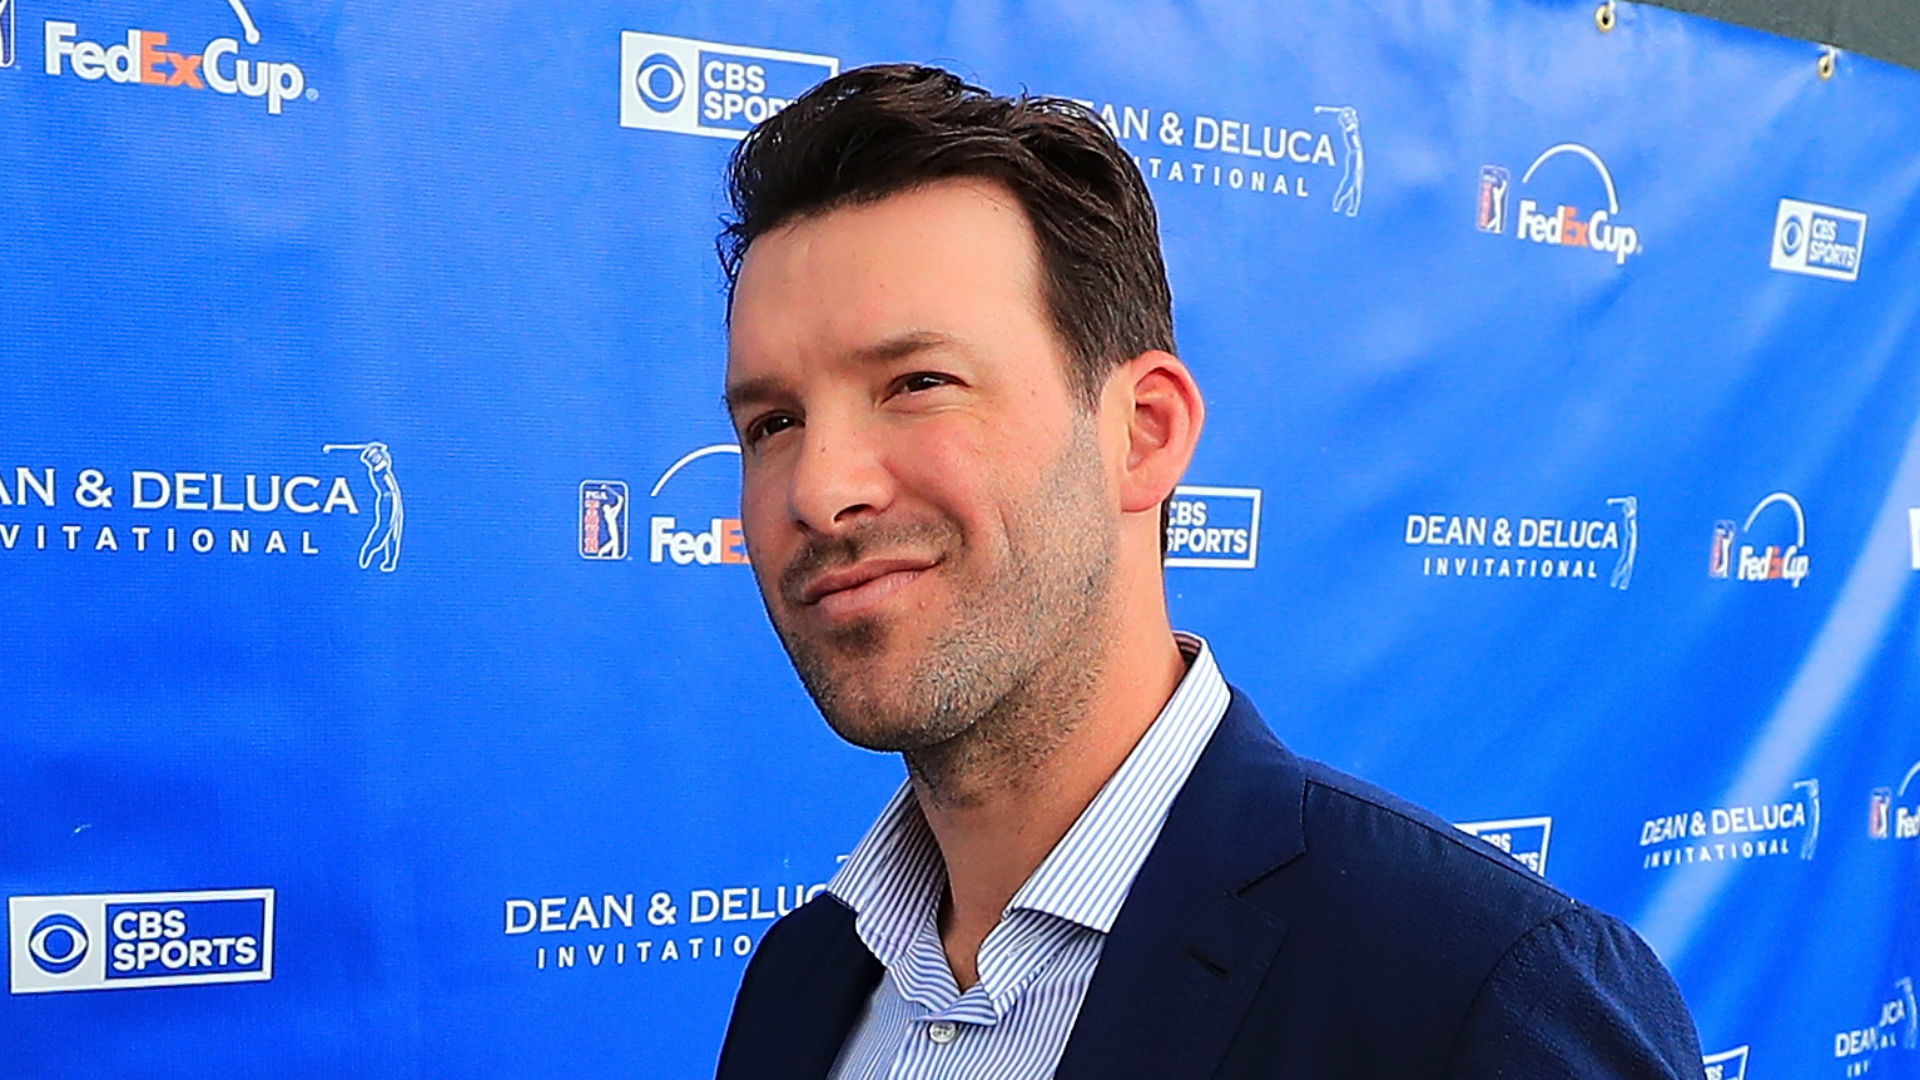 Tony Romo unveils new psychic ability as National Football League analyst in CBS debut